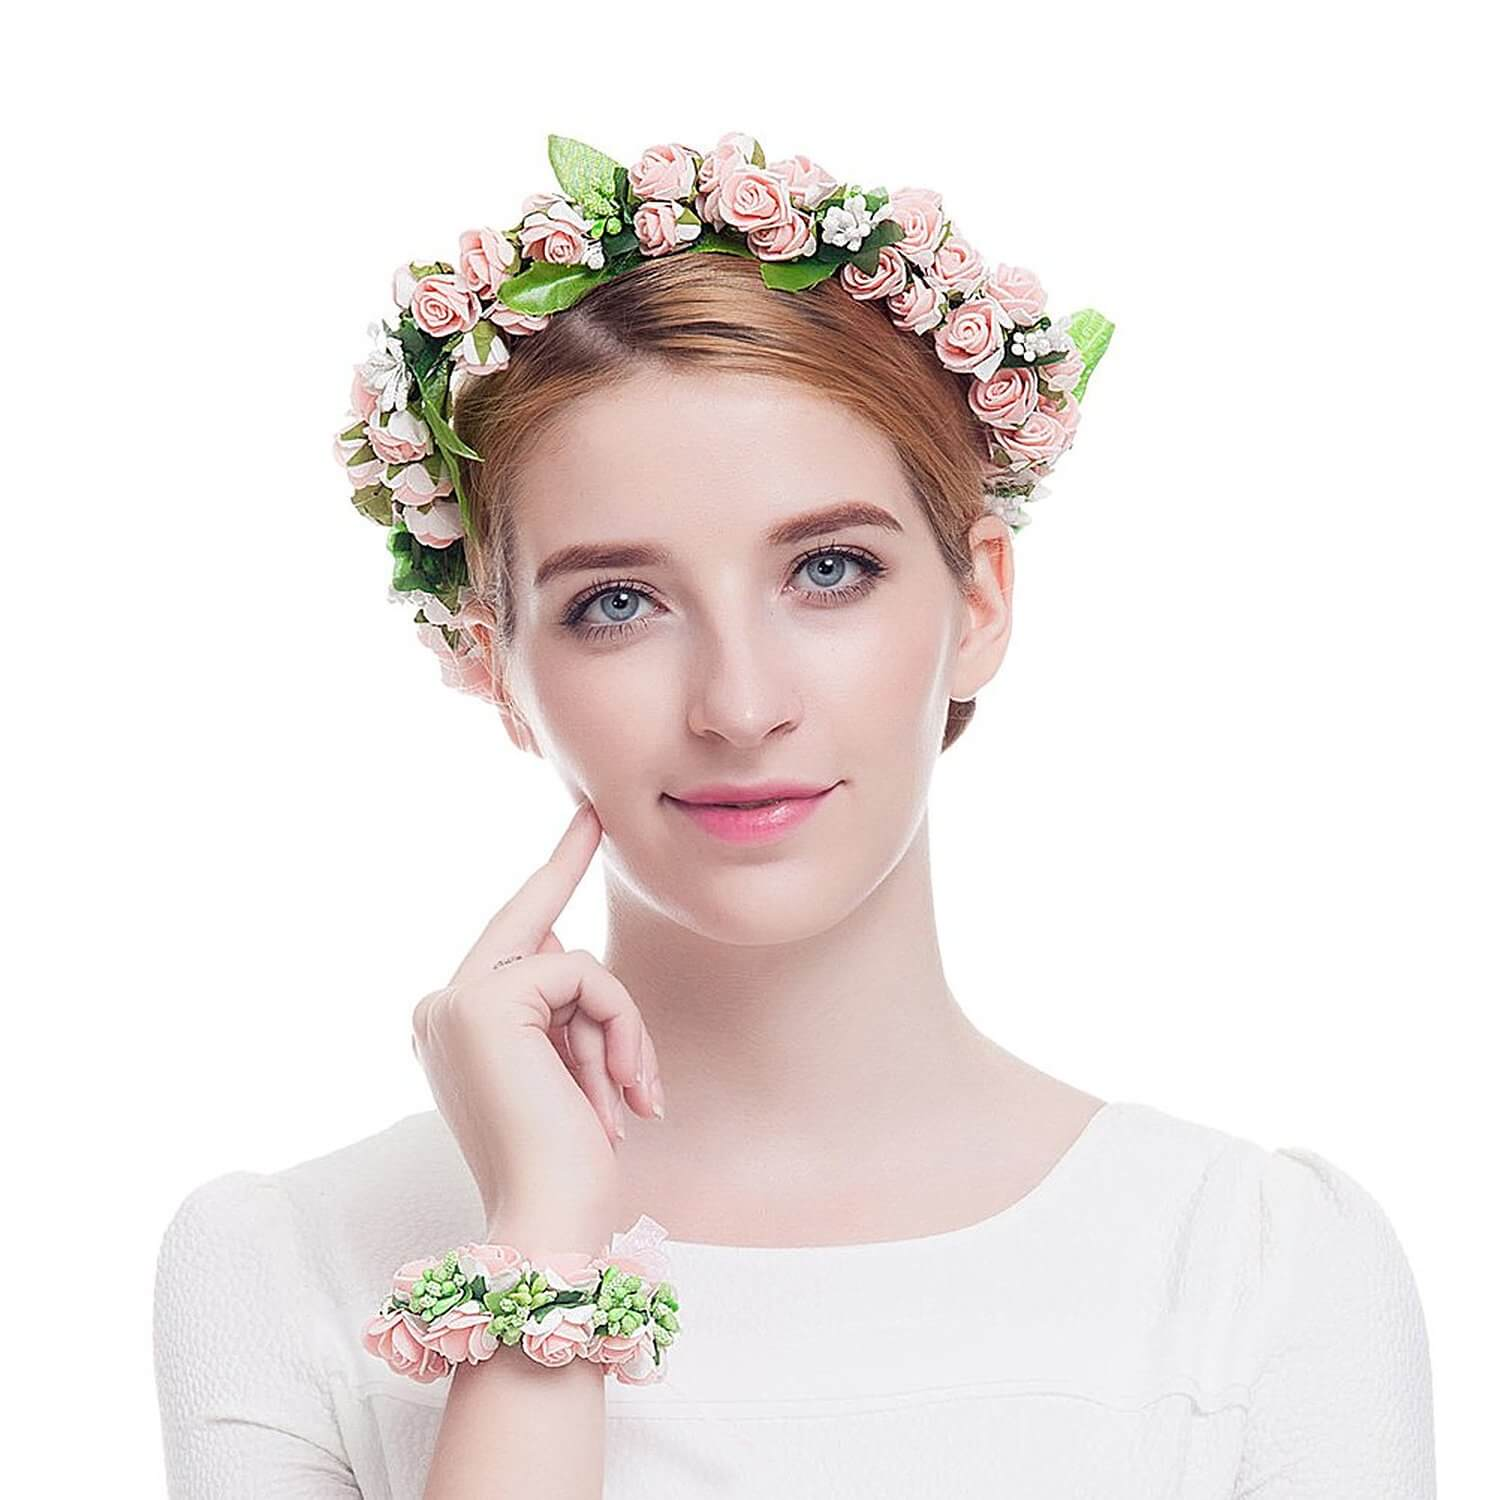 Floral Bands: Different Ways To Use Dried Or Fresh Flowers In Fashion